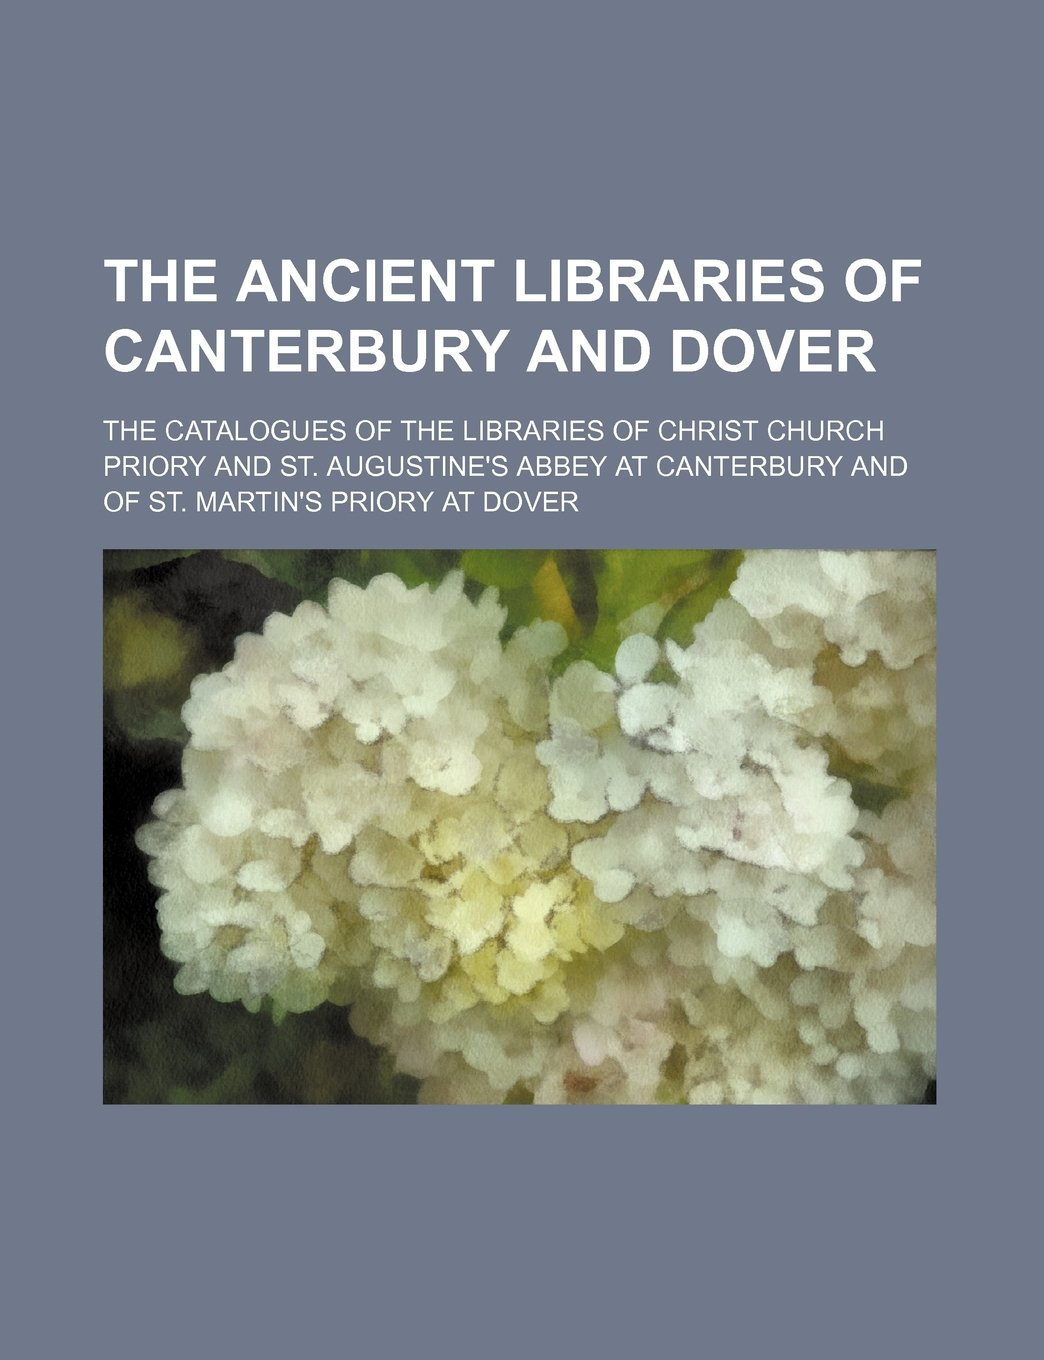 The Ancient Libraries of Canterbury and Dover; The Catalogues of the Libraries of Christ Church Priory and St. Augustine's Abbey at Canterbury and of pdf